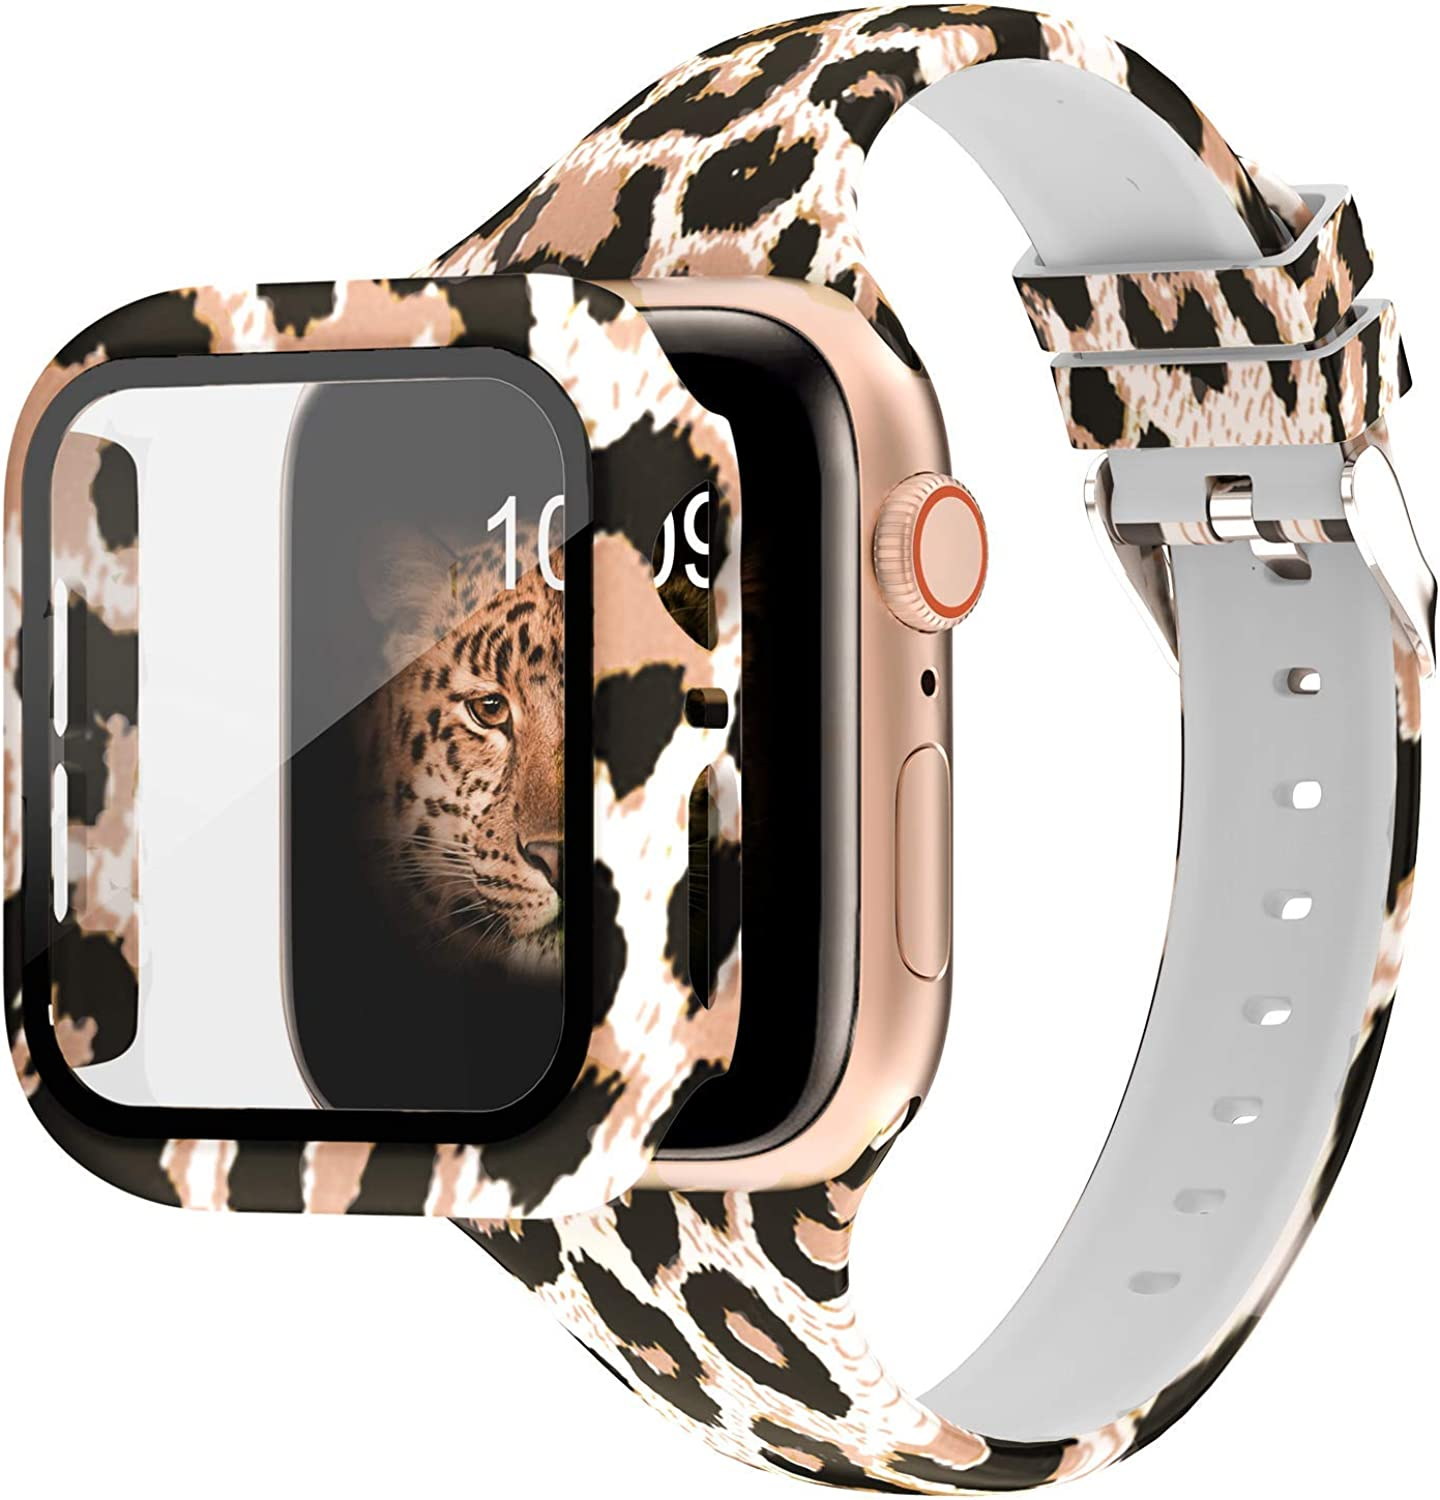 DABAOZA Compatible for Apple Watch Band 38mm with Case, Leopard Silicone Band Fadeless Pattern Thin strap with Full Around Screen Protector Bumper Case Cover for iWatch Series 3/2/1. (Leopard,38mm)